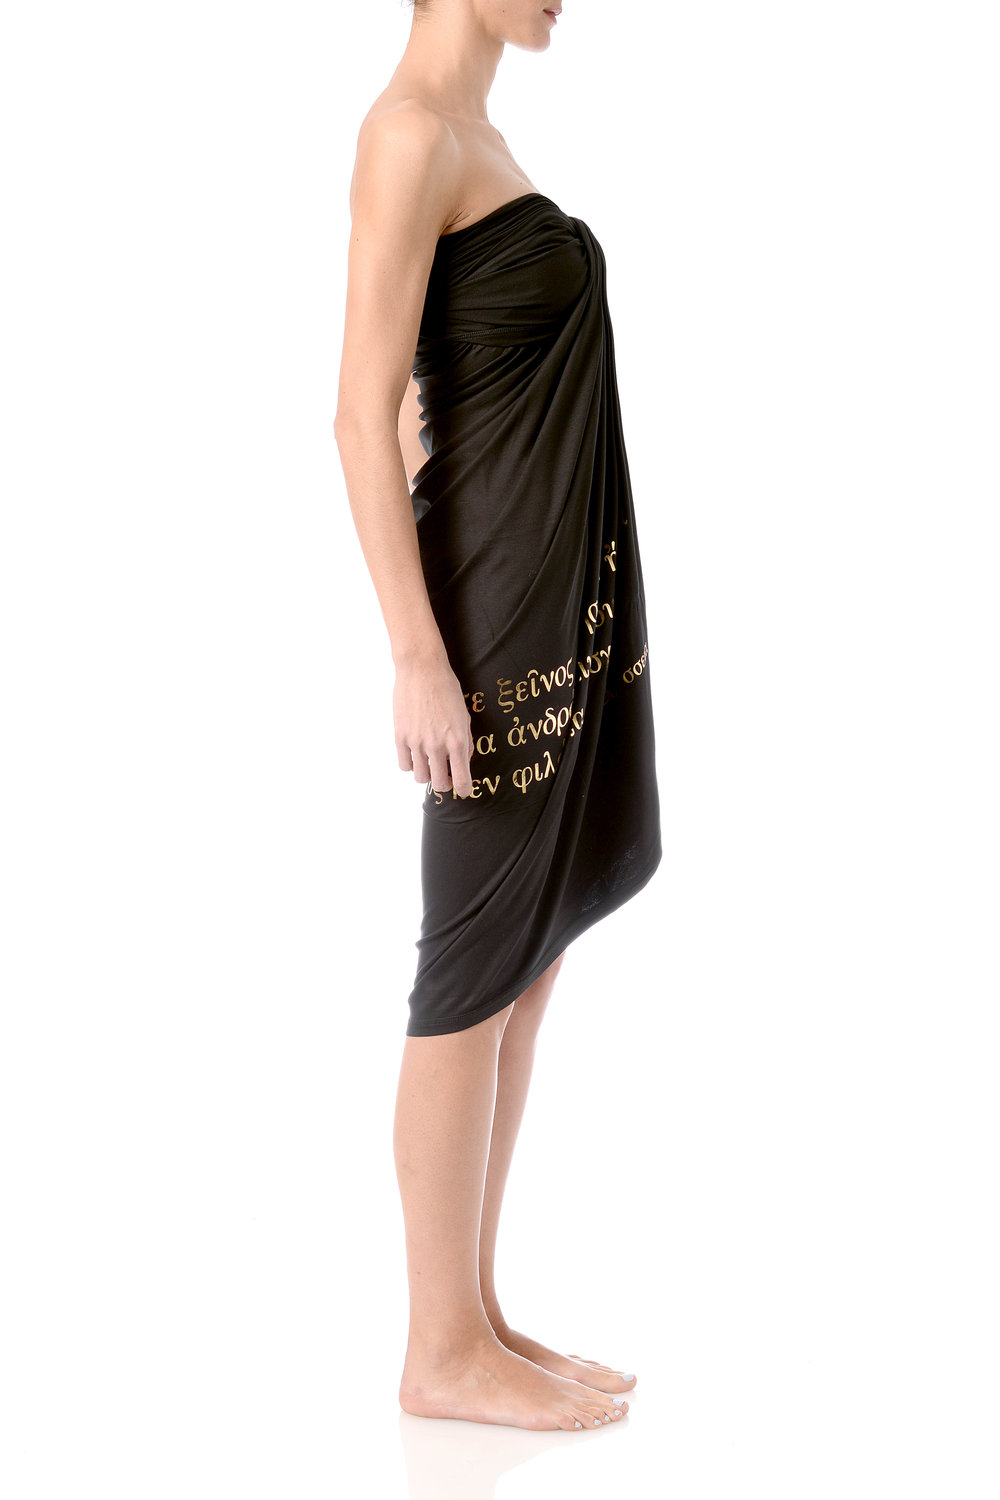 hospitality-phrase-pareo-strapless-dress-wraped-infront-golden-foil-on-black-viscose-side.jpg